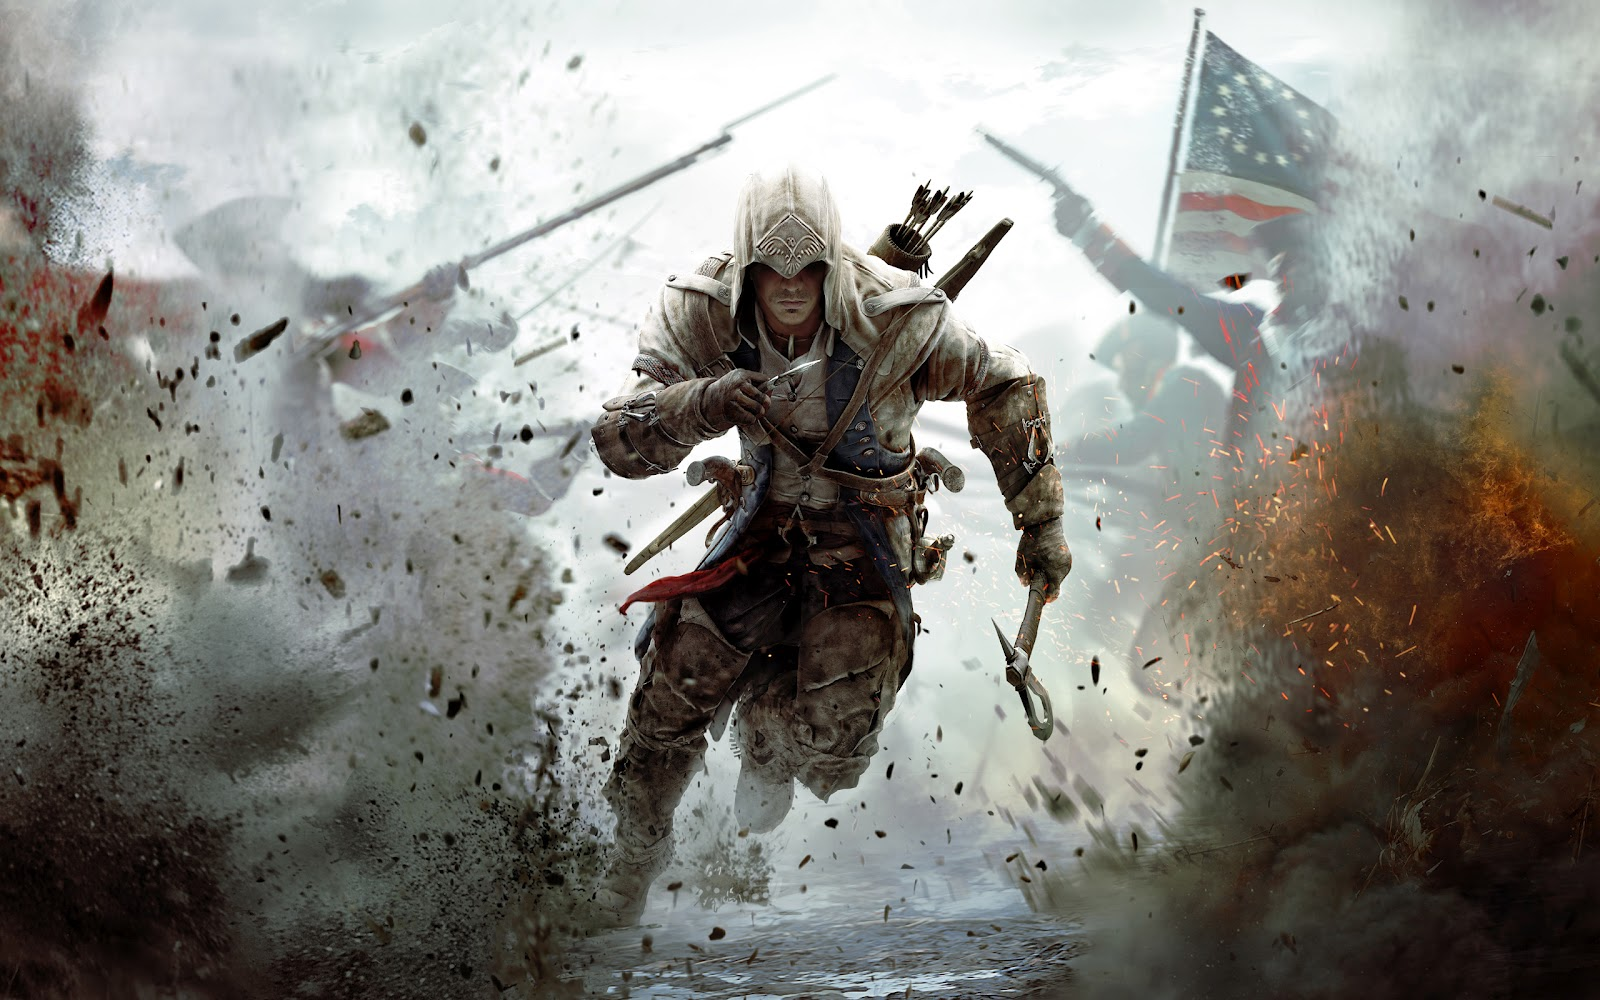 This is a post about Assassin's Creed 3 and Jingoism